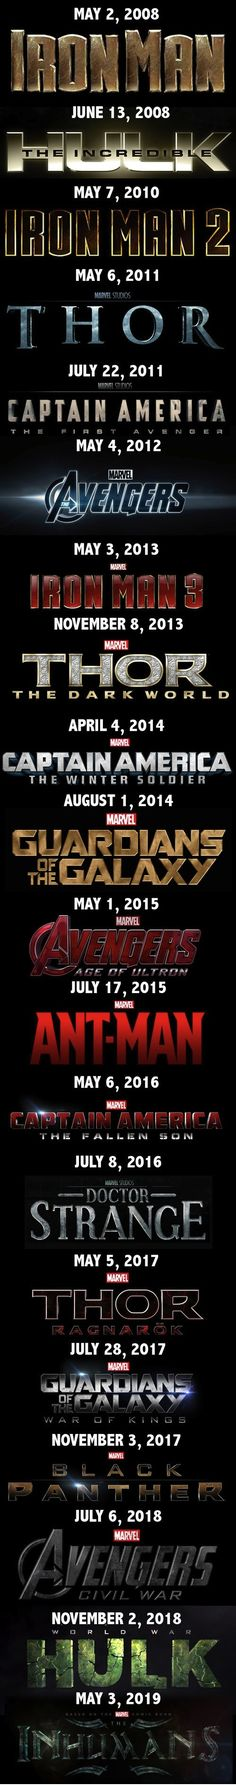 The Marvel Cinematic Universe. SO EXCITED!!!!! <<<<<< OMG OMG OMG OMG OMG OMG OMG OMG OMG!!!!!!!!!!!!! ------ASHLDJKSADHJGKLFG I......I don't.......uhhhh.......this......is...... ge-ge-geek overlo-o-o-oad...... holy....ASKLFH......crap.......I need a paper bag, I think I'm hyperventilating.......<-- oh, these comments! :)